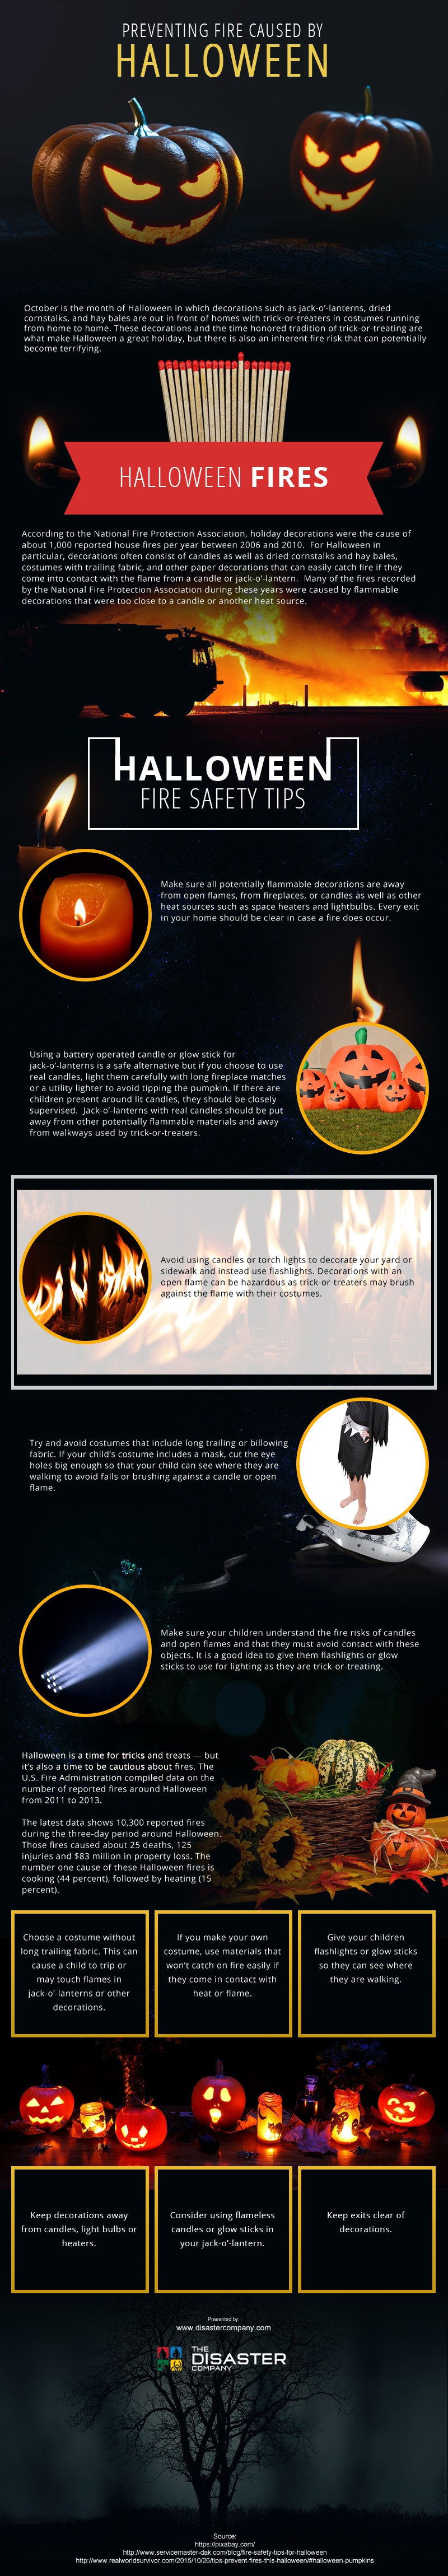 Preventing Fire Caused by Halloween [infographic]